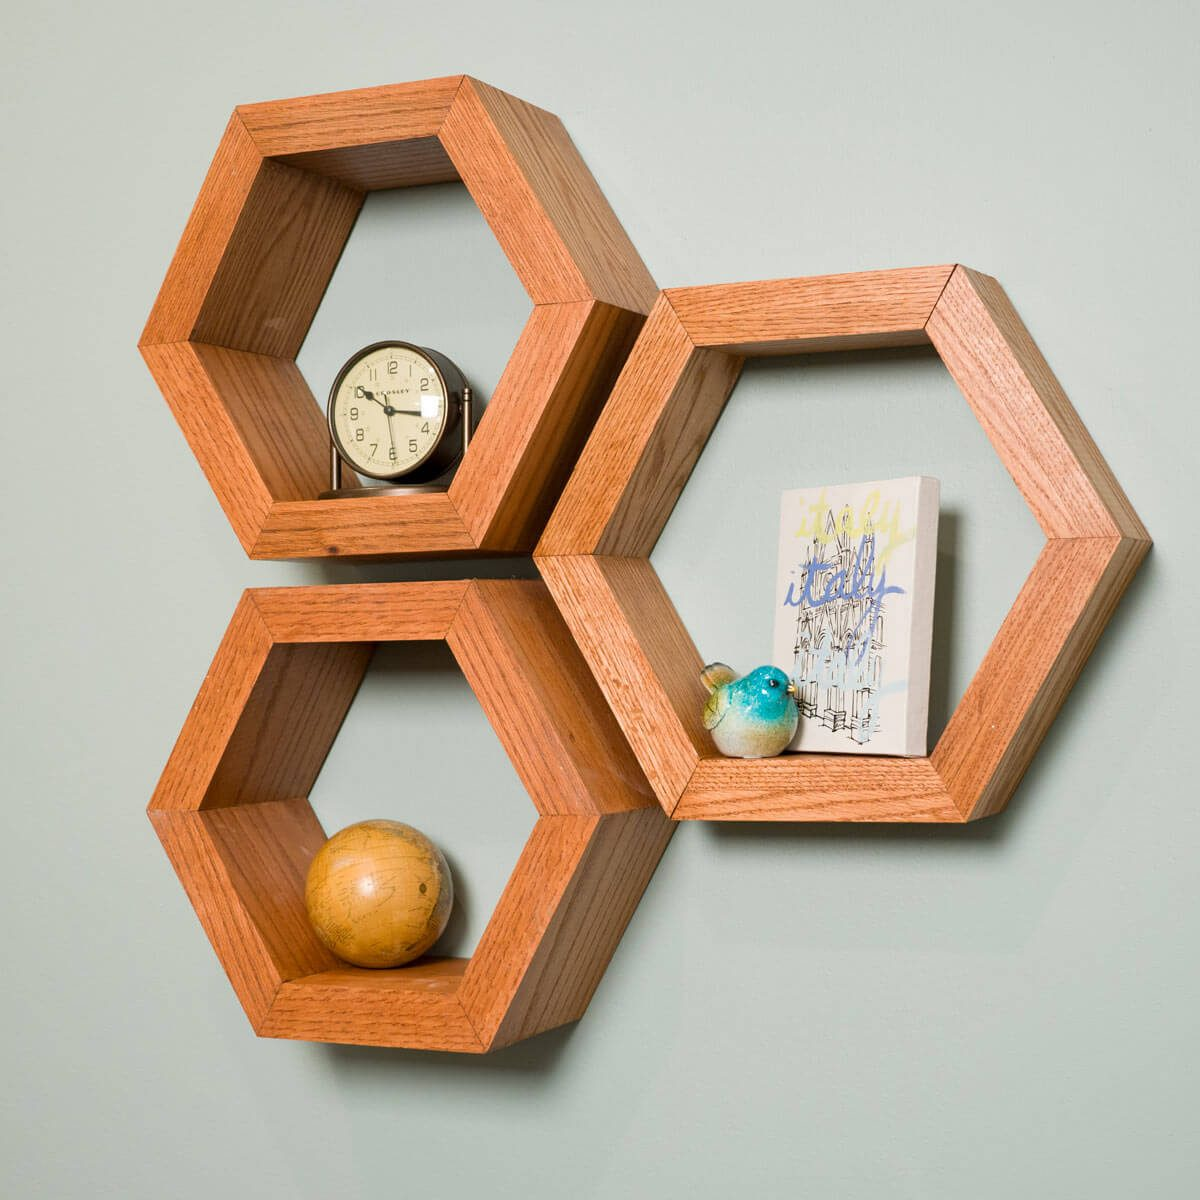 Hexagon Shelves Lead